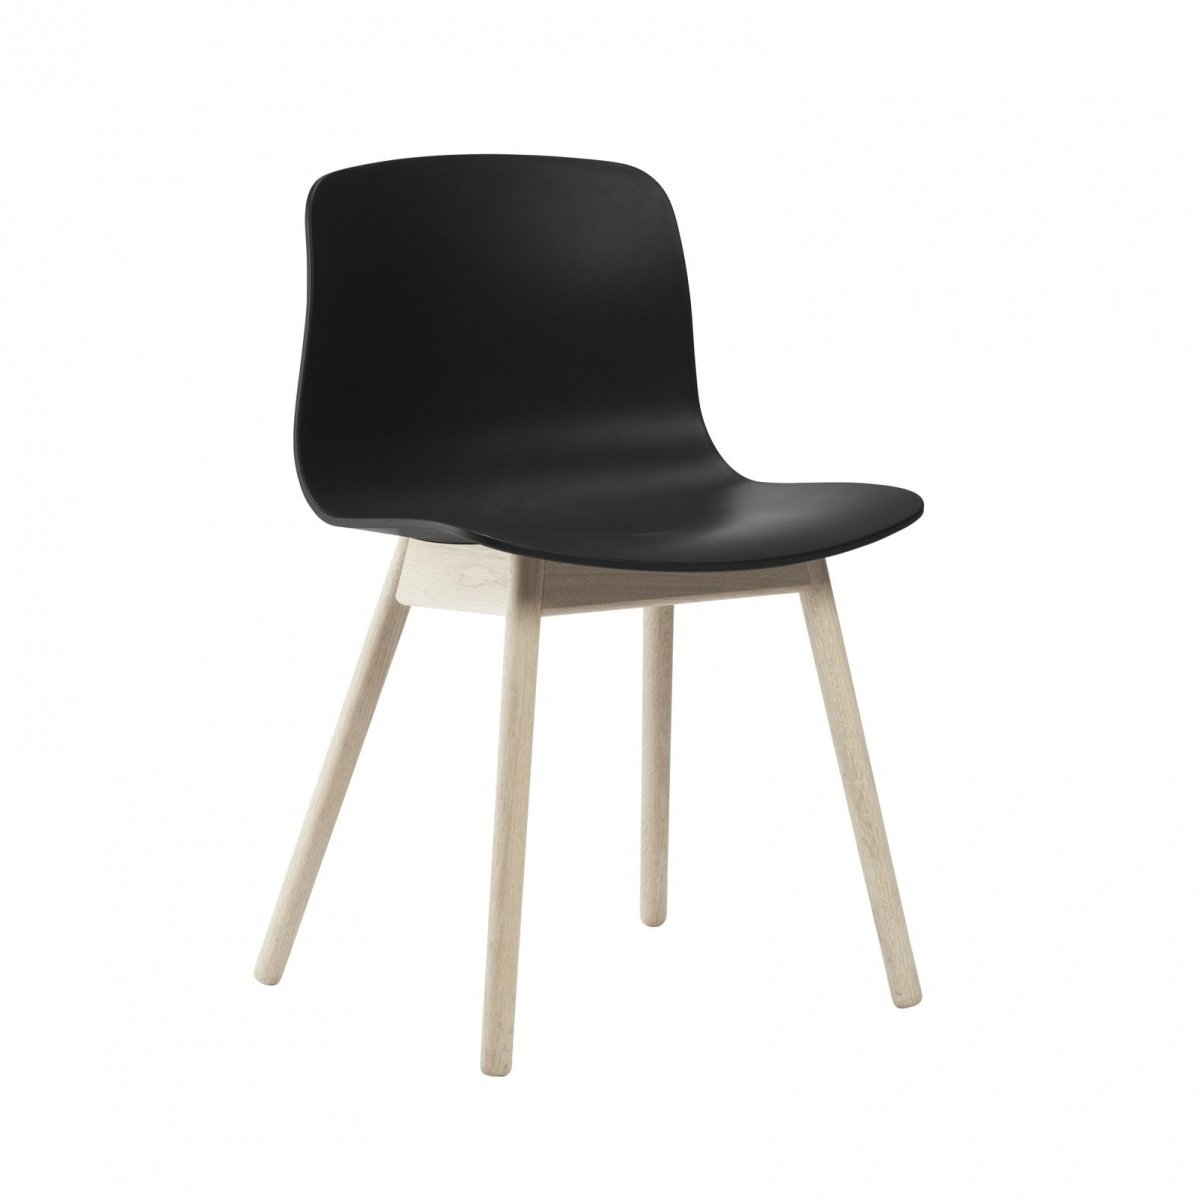 Hay - Hay dk aac12 about a chair 12 aac about a chair roble ...